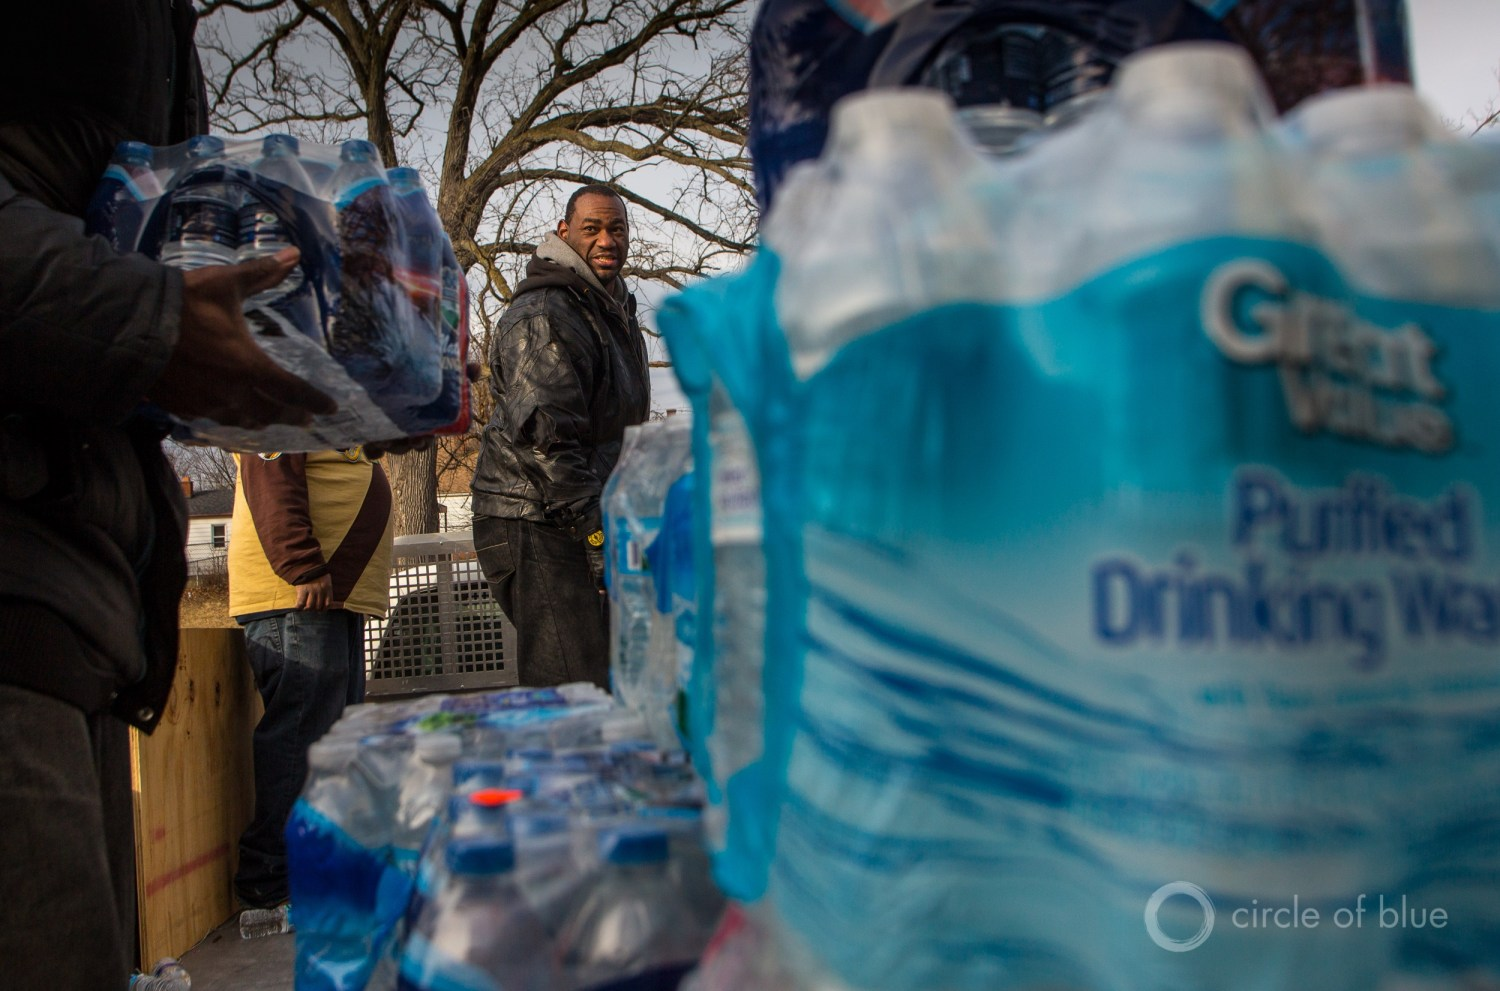 Residents unload bottled water at a distribution center in Flint, Michigan, on February 6, 2016.